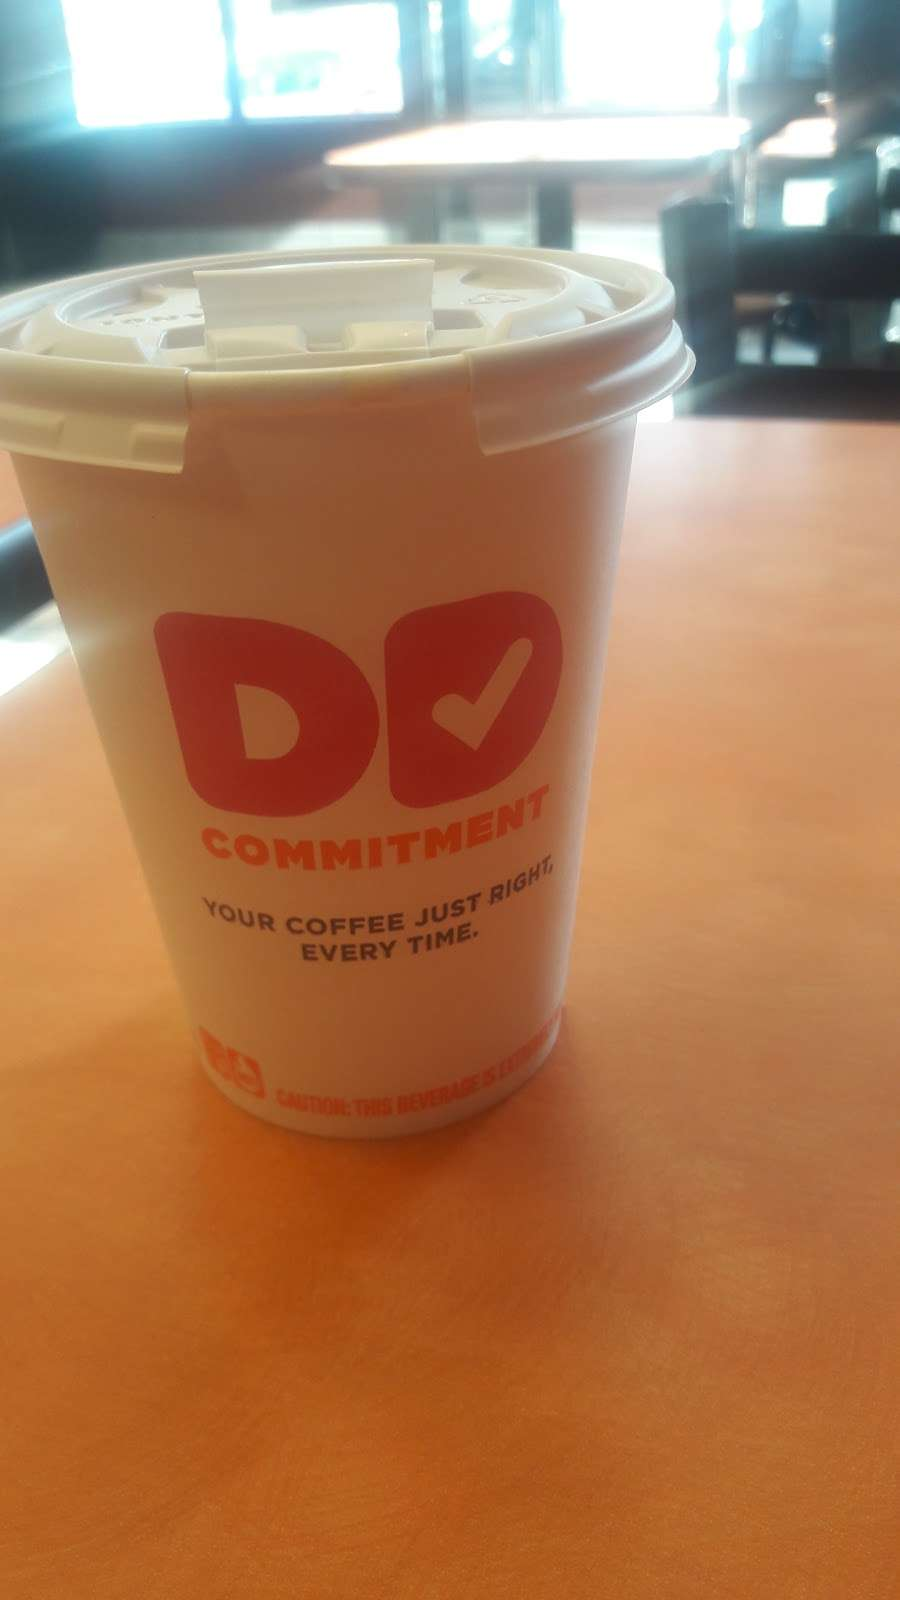 Dunkin Donuts - cafe  | Photo 6 of 10 | Address: 9001 Bergenline Ave, North Bergen, NJ 07047, USA | Phone: (201) 662-1111